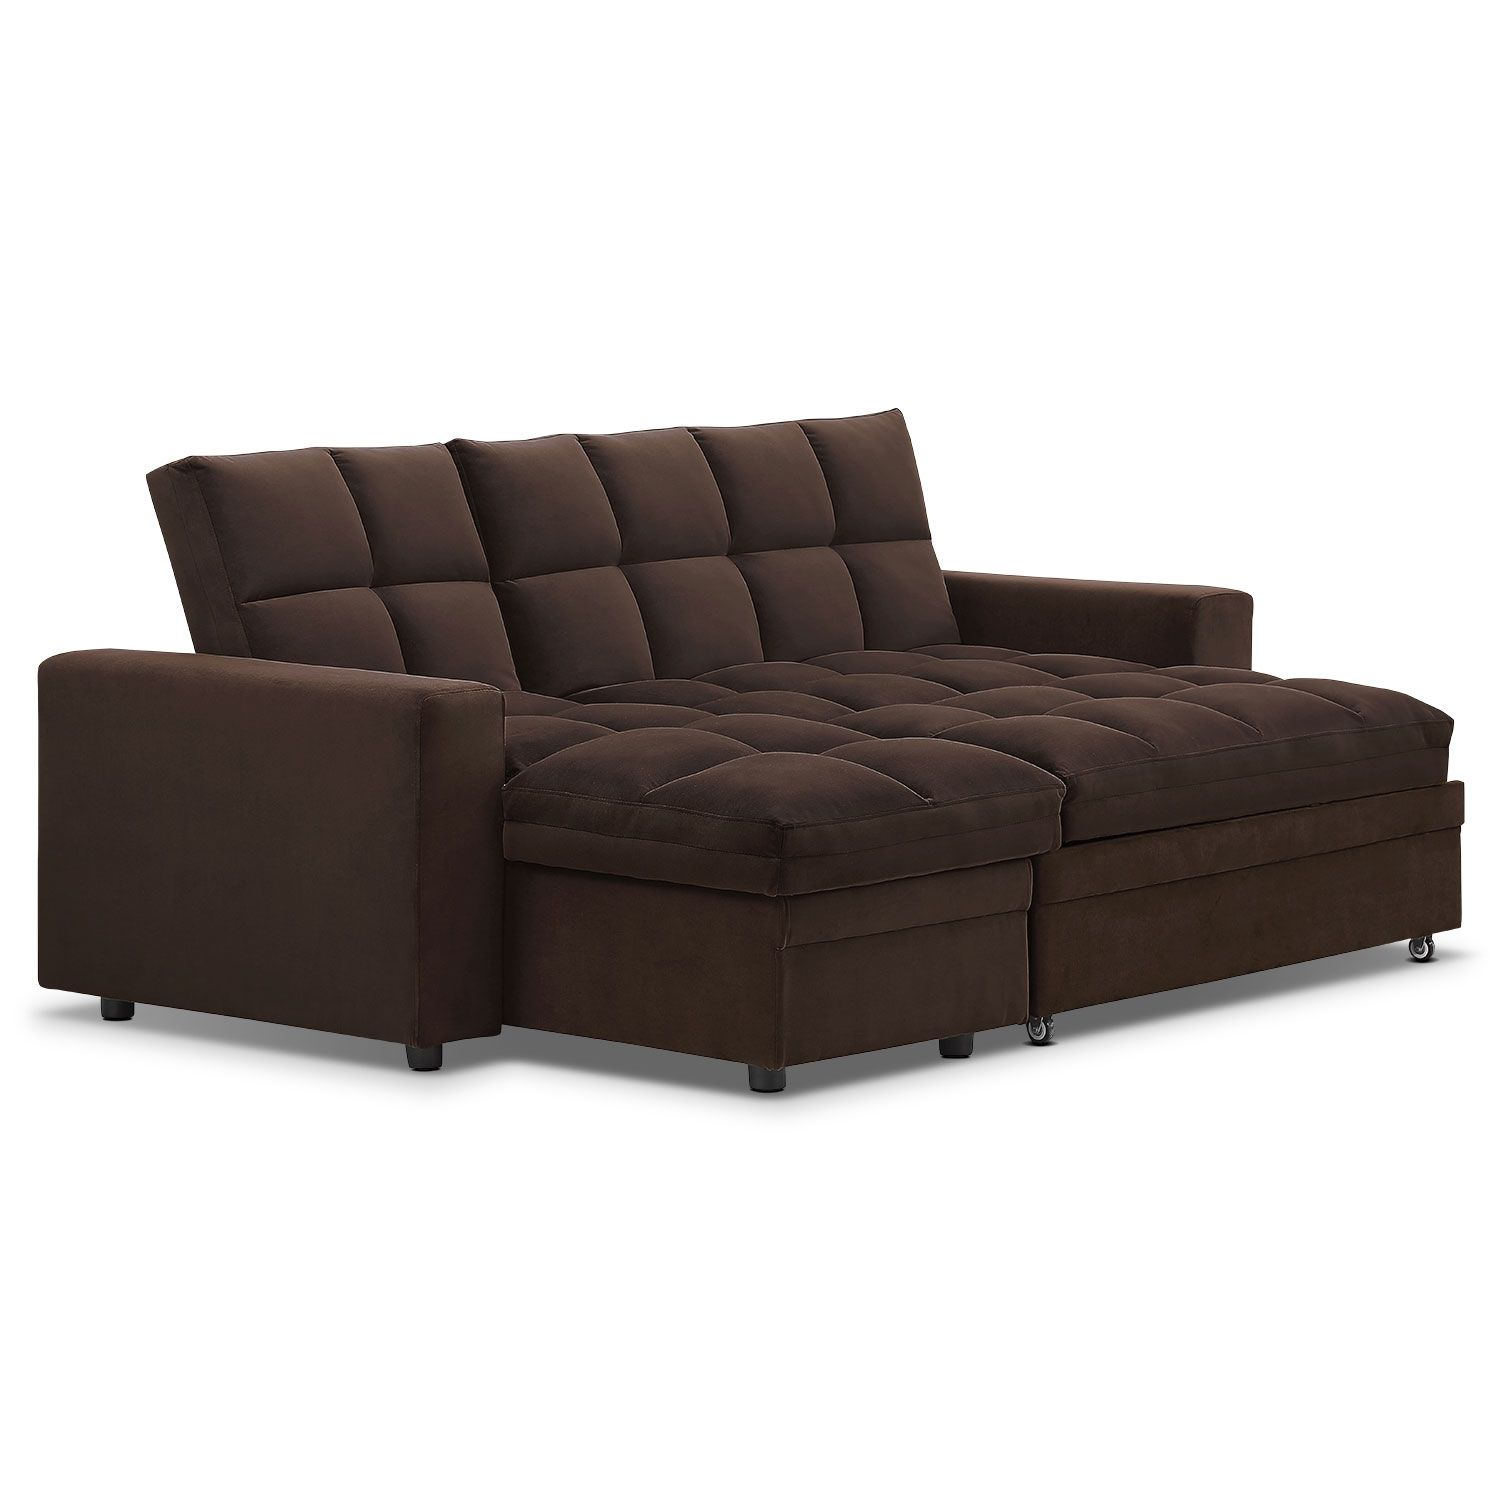 Brown Sectional Sofa With Sleeper & Storage